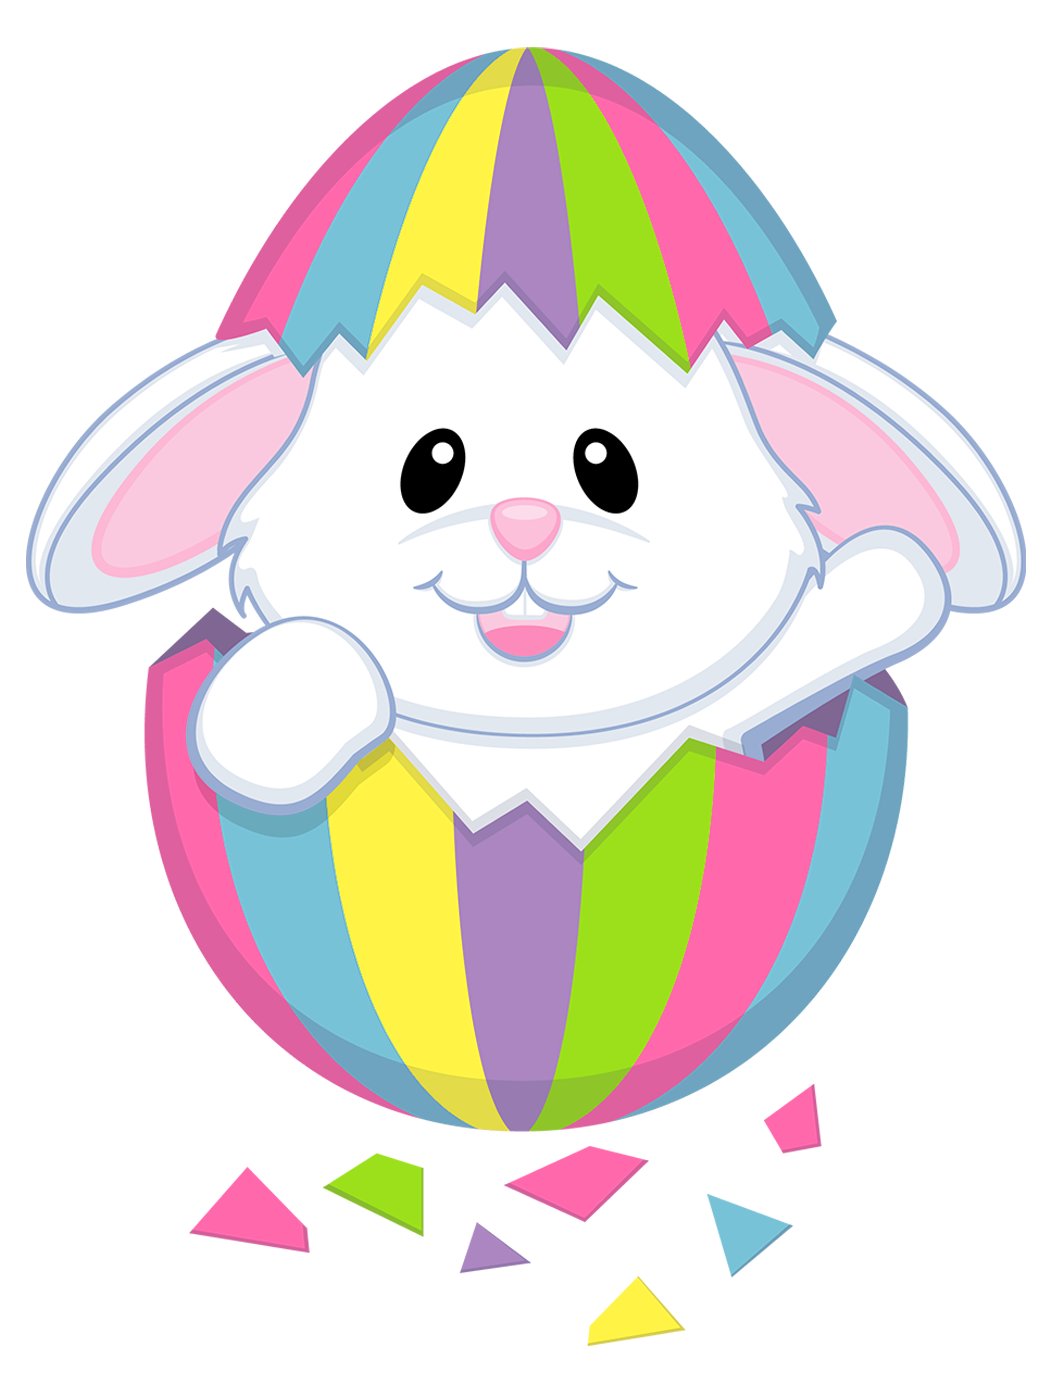 Easter basket clipart with a cross in it picture royalty free download Easter Bunny - ClipArt Best | Easter eggs | Pinterest | Easter bunny ... picture royalty free download